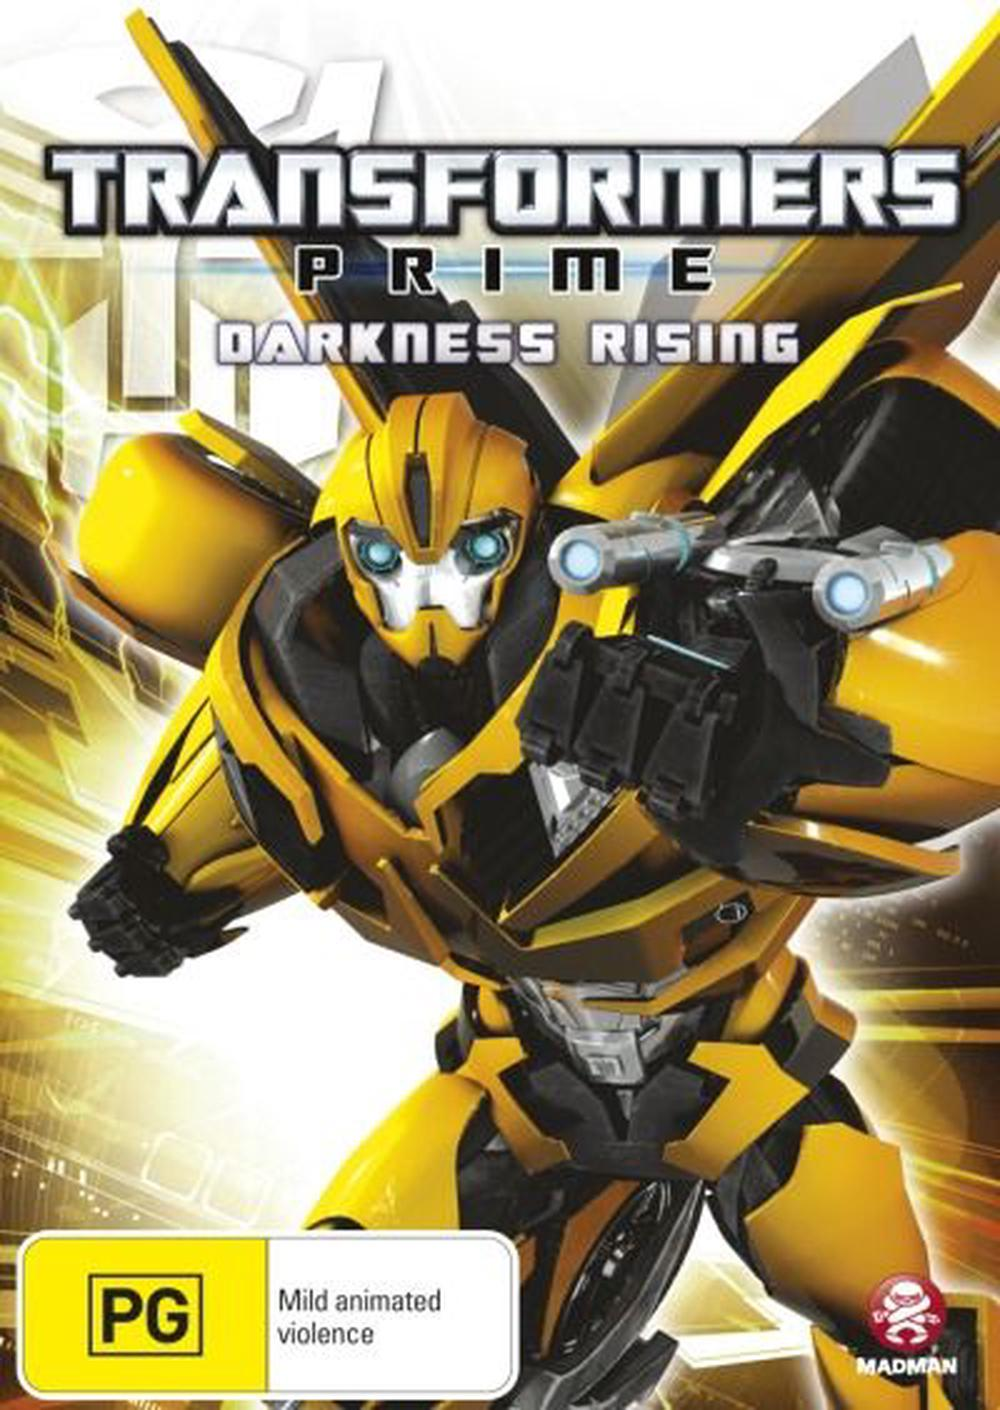 Transformers: Prime - Darkness Rising (volume 1)